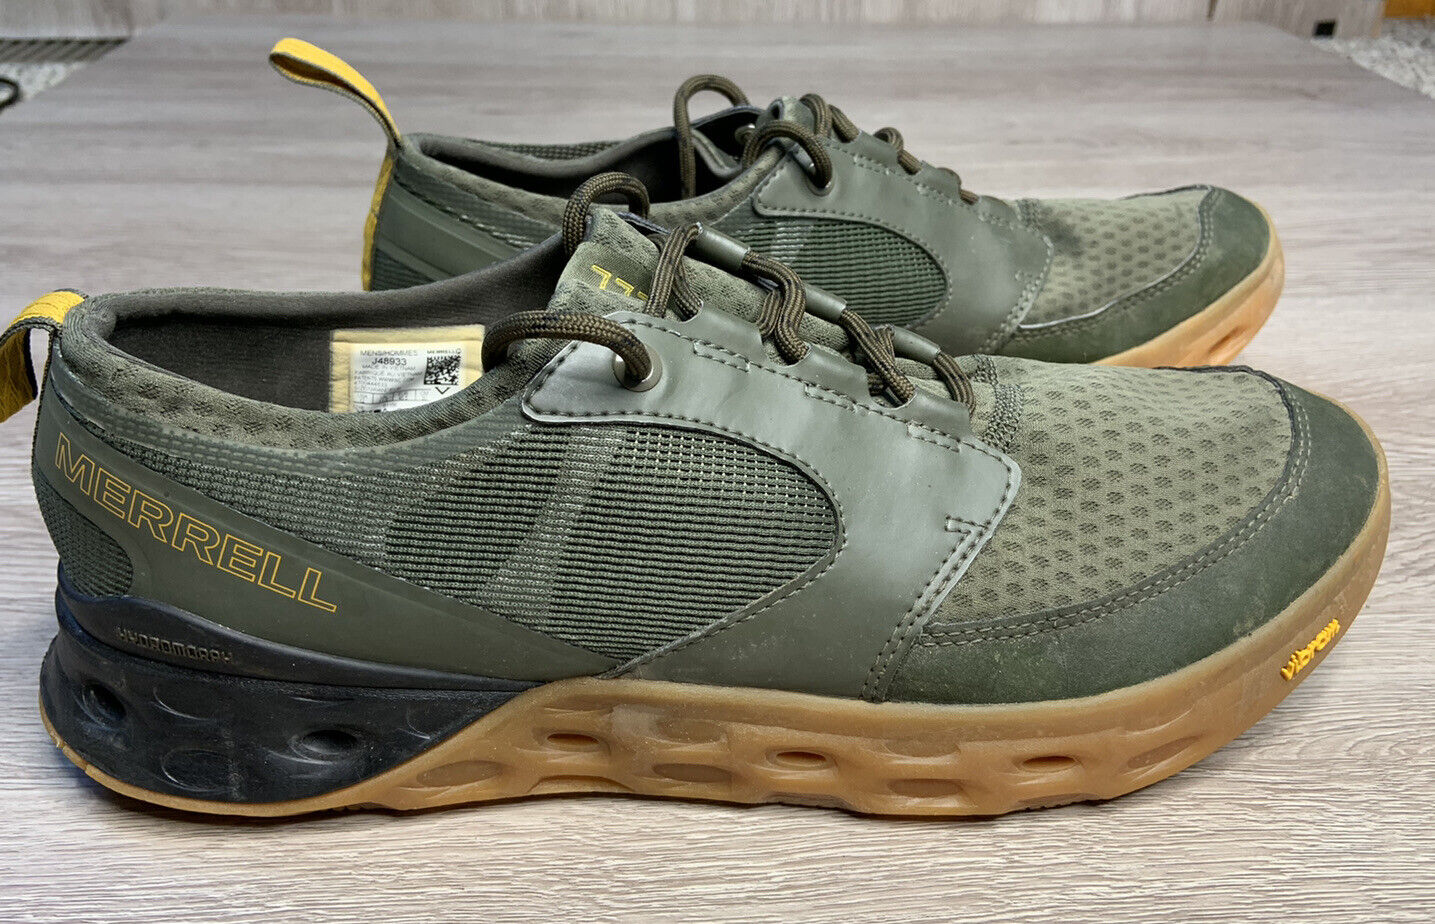 MERRELL Men's Tideriser Lace Up Low Top Sneaker Shoe Hiking Size 12 Olive